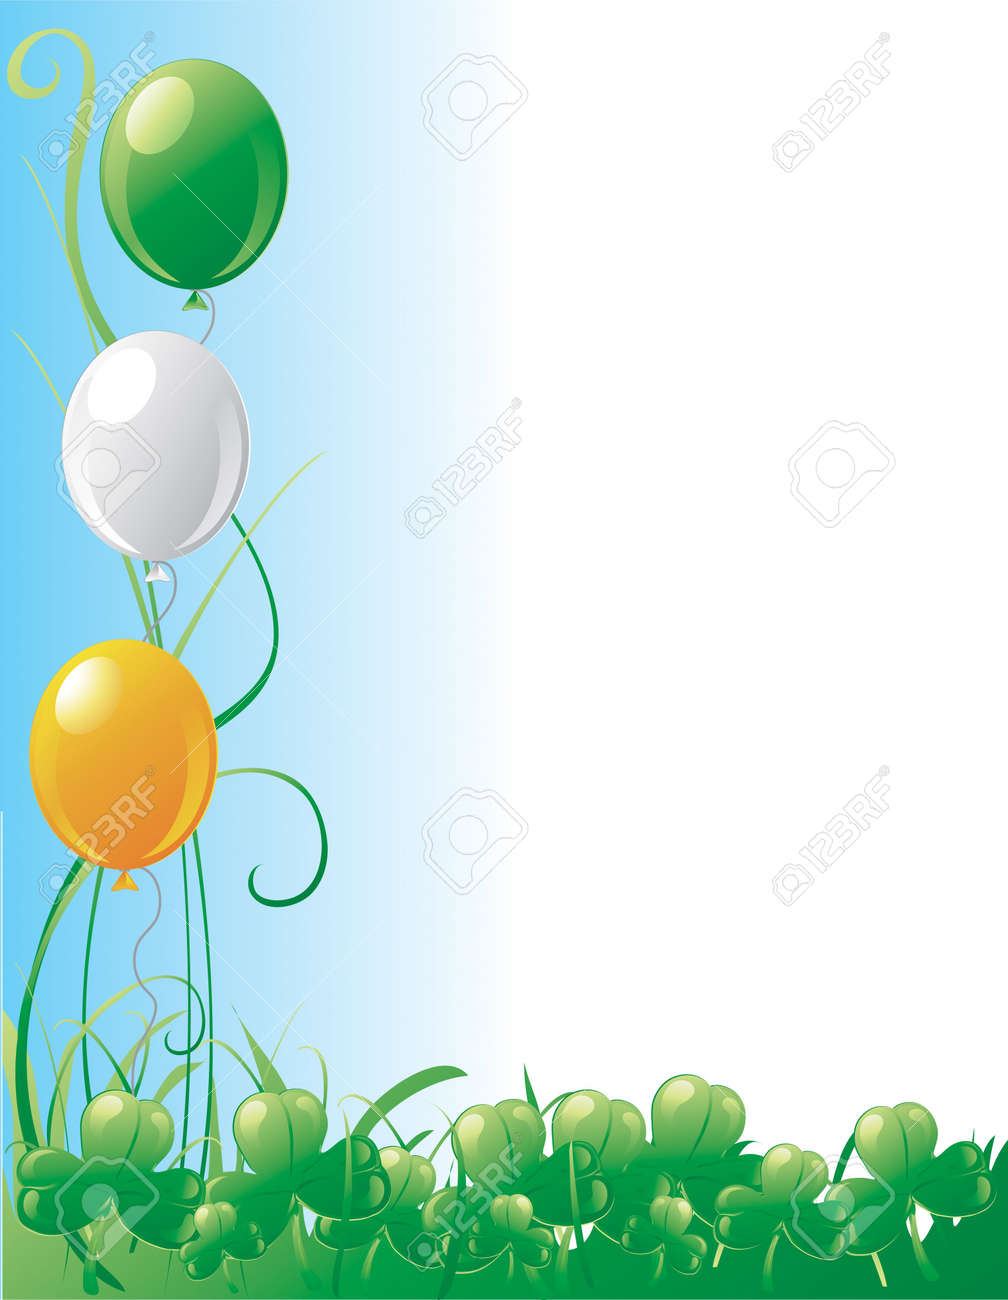 St. Patrick's day border with grass and a blue sky Stock Photo - 2666757